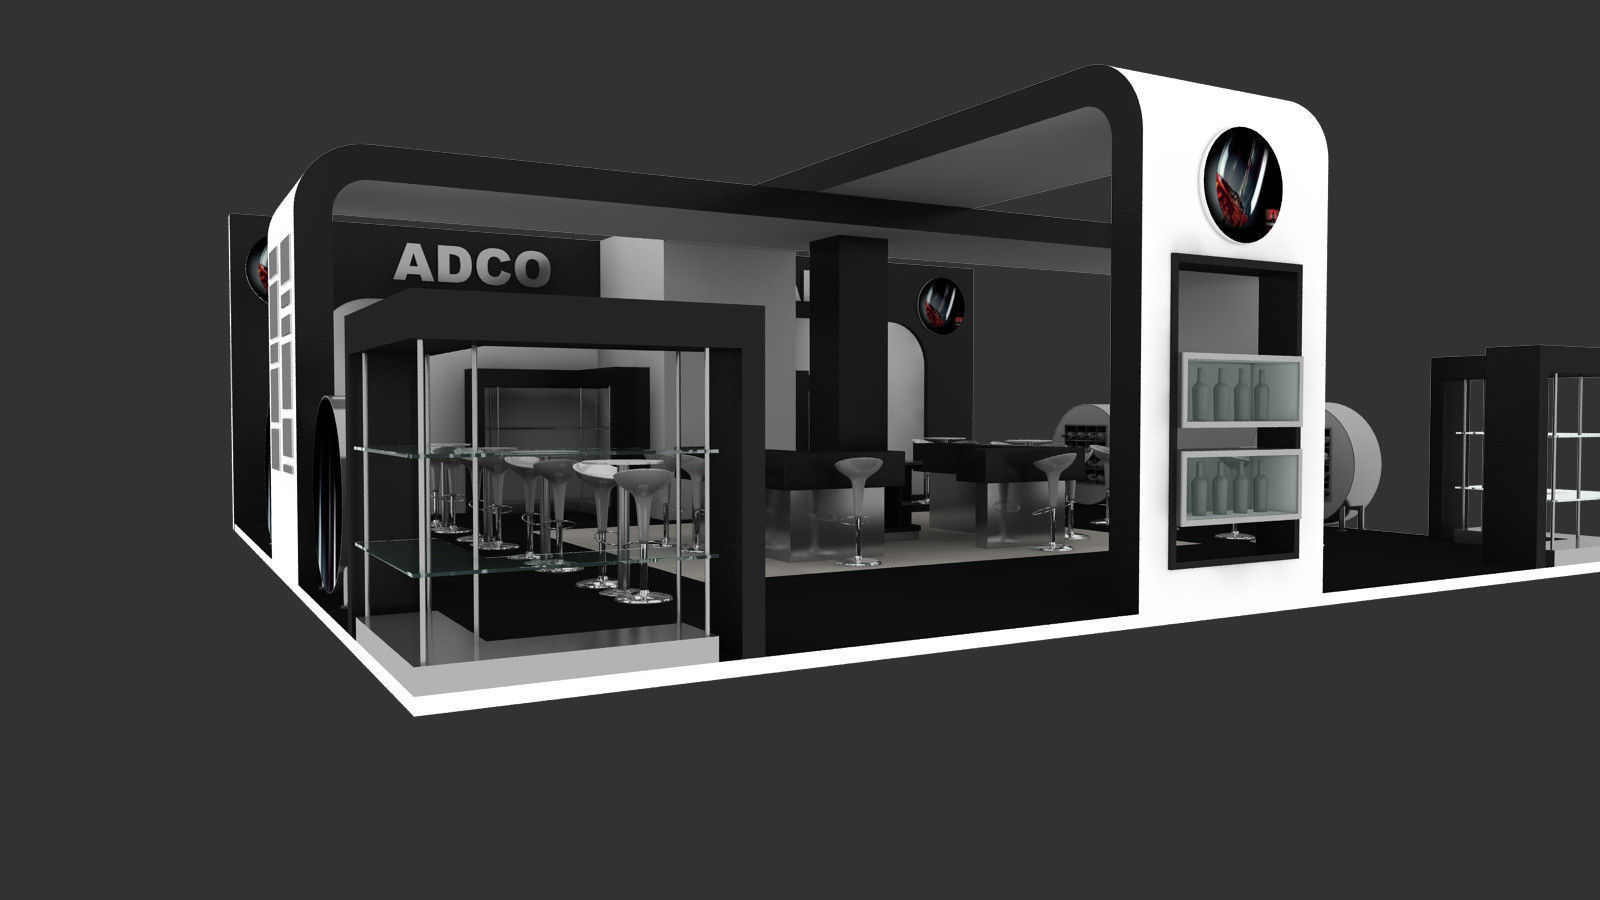 Exhibition Stand Designer Job Description : Adco exhibition stand design d model animated